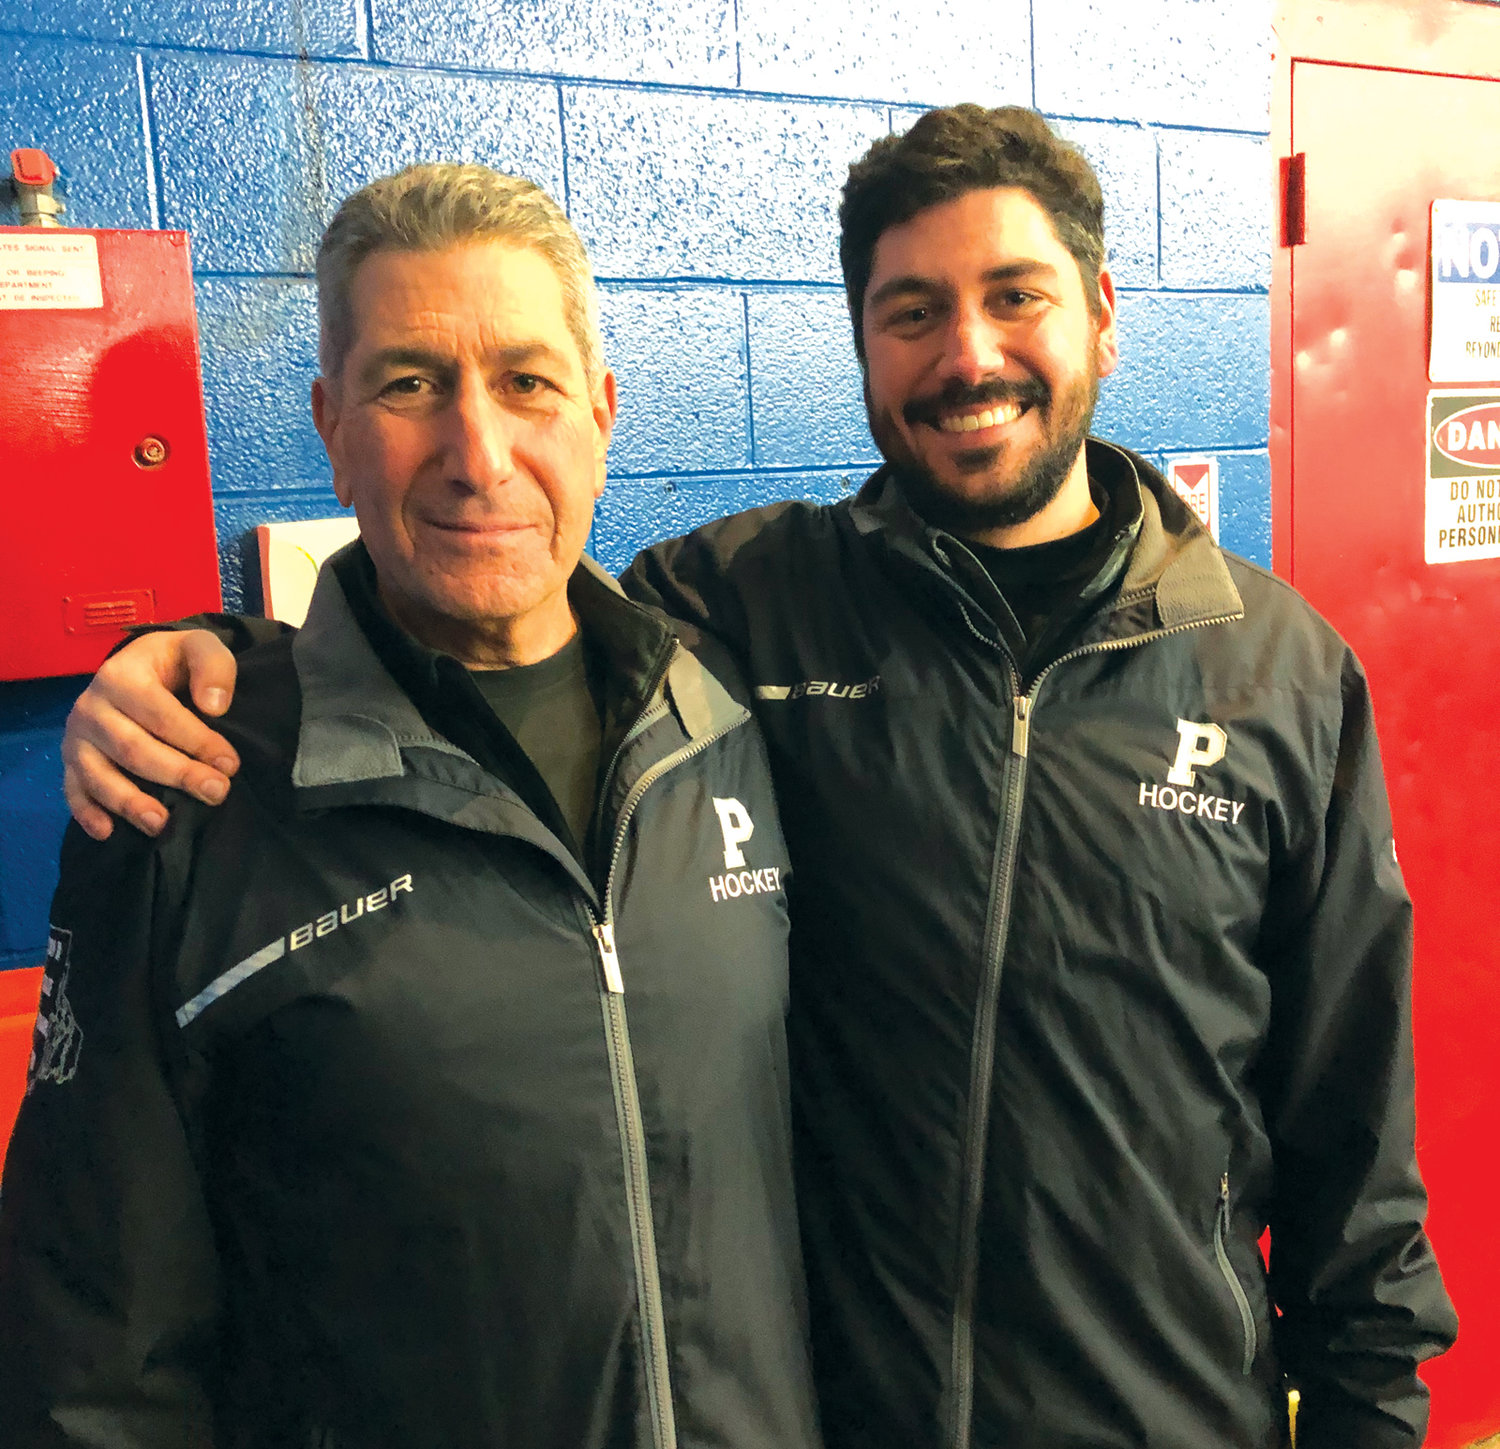 Pilgrim head coach Mike Boyajian Jr. (right) joins his father and assistant coach Mike Boyajian Sr. (left) after securing their place in the Division III State Championship on Tuesday. The pair became just the second father-son duo in Rhode Island to ever reach three consecutive state finals, joining Mount St. Charles' Bill and David Belisle. The Pats will take on the West Warwick/Exeter-West Greenwich co-op this weekend, with Game 1 on Friday night.